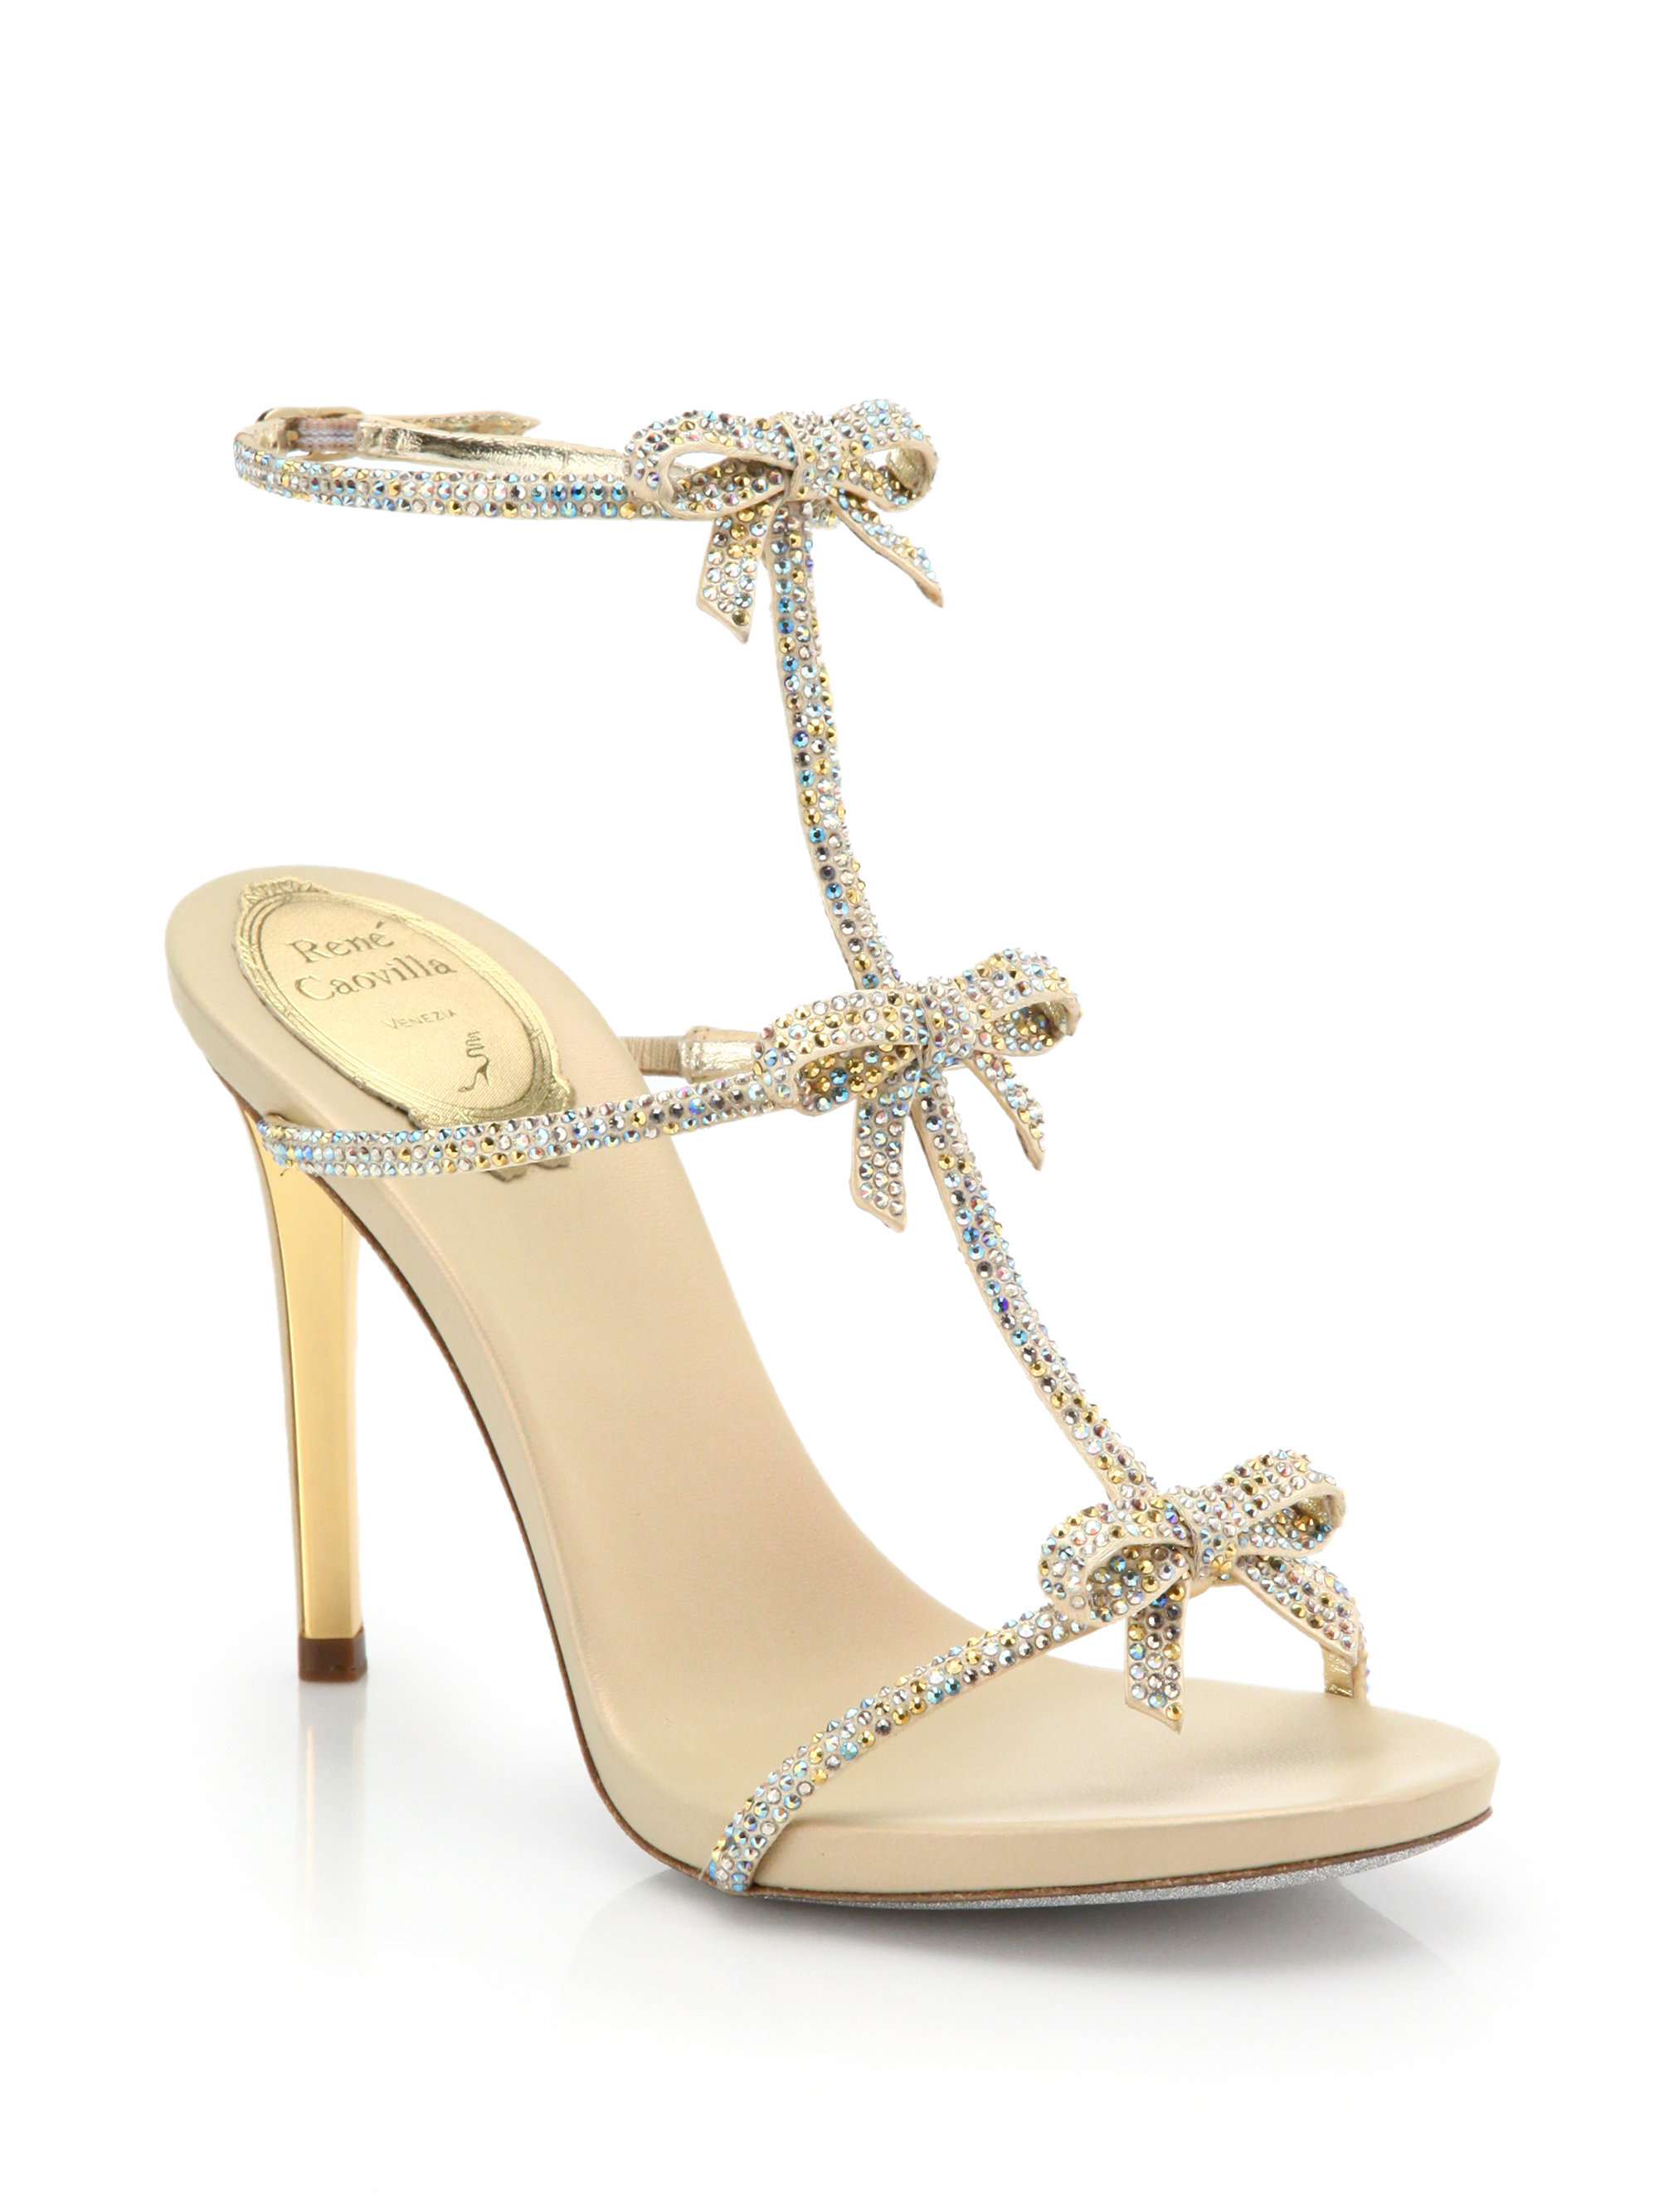 788a44c88 Lyst - Rene Caovilla Strass Swarovski Crystal Bow Sandals in Metallic